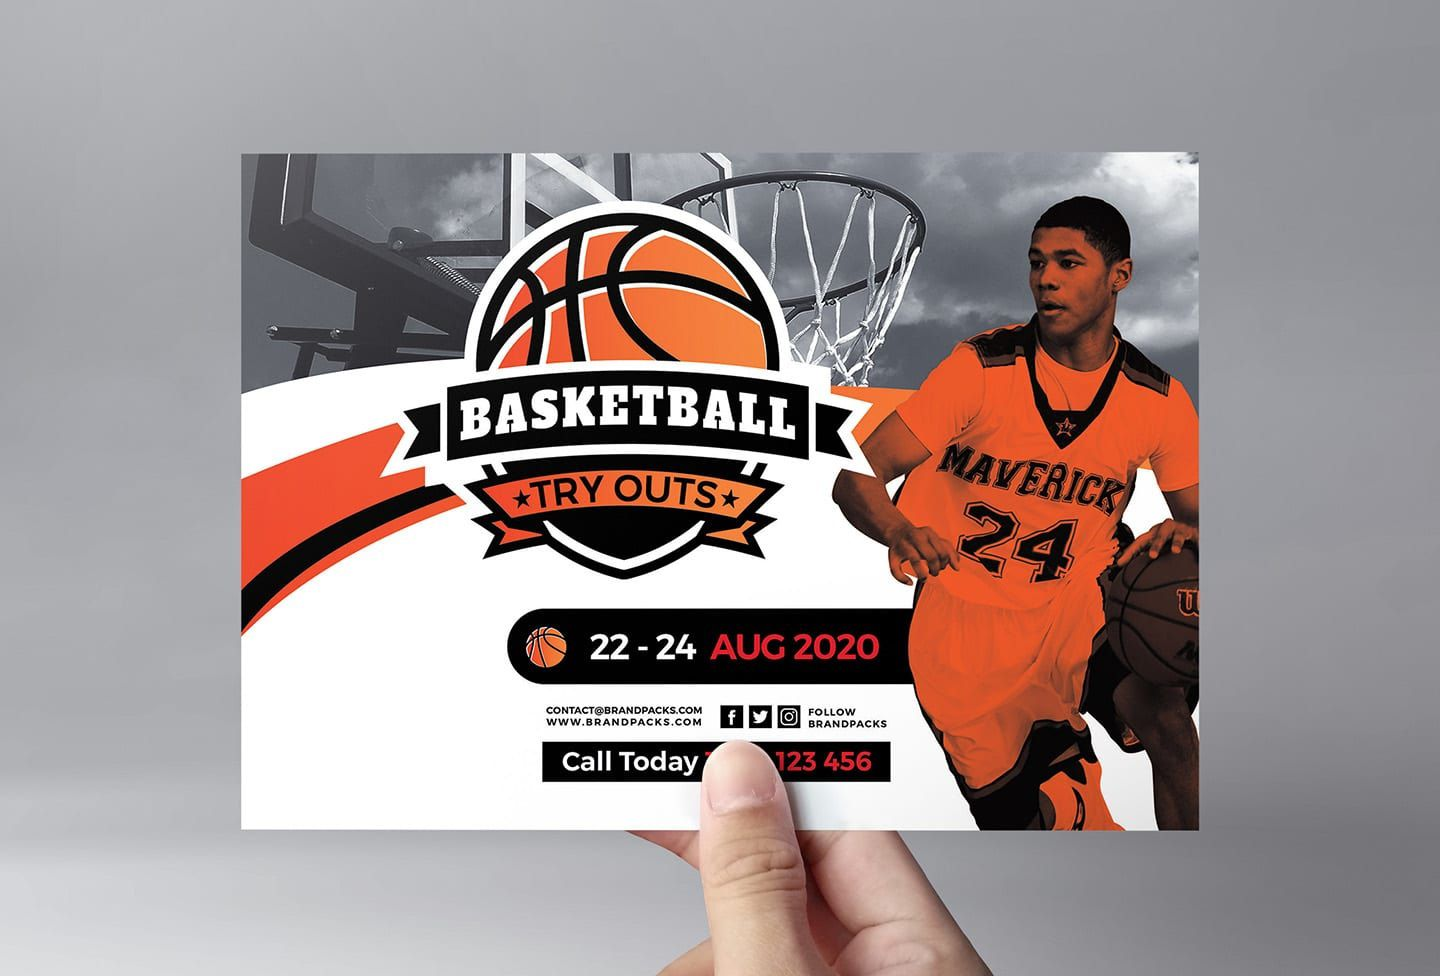 005 Formidable Free Basketball Flyer Template Idea  Game 3 On Tournament WordFull